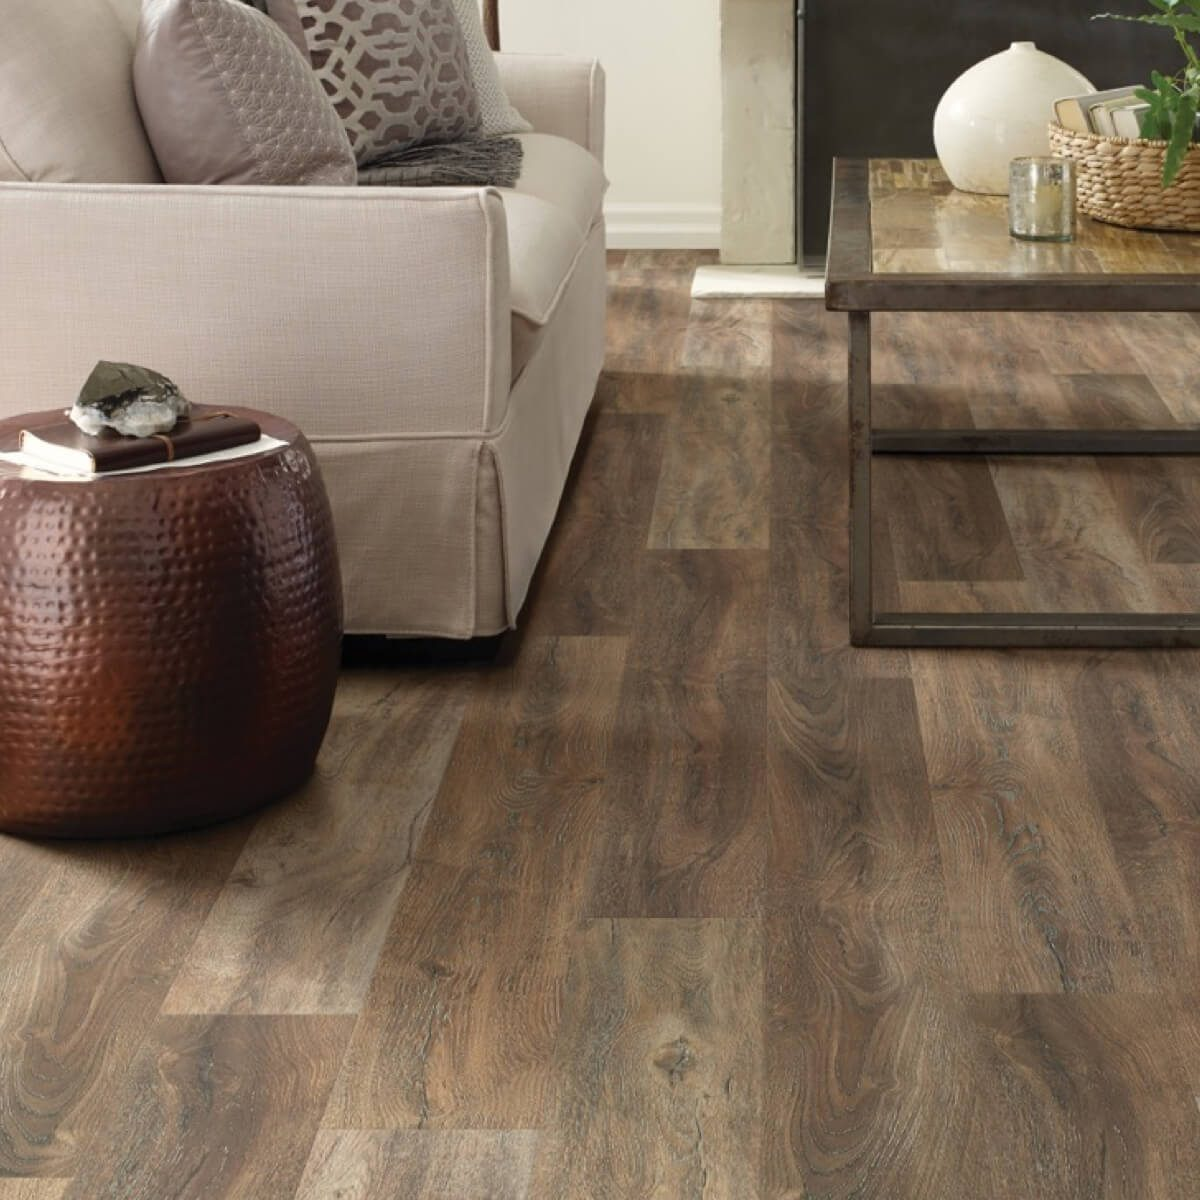 Shaw vinyl flooring | Jack's Tile And Carpet